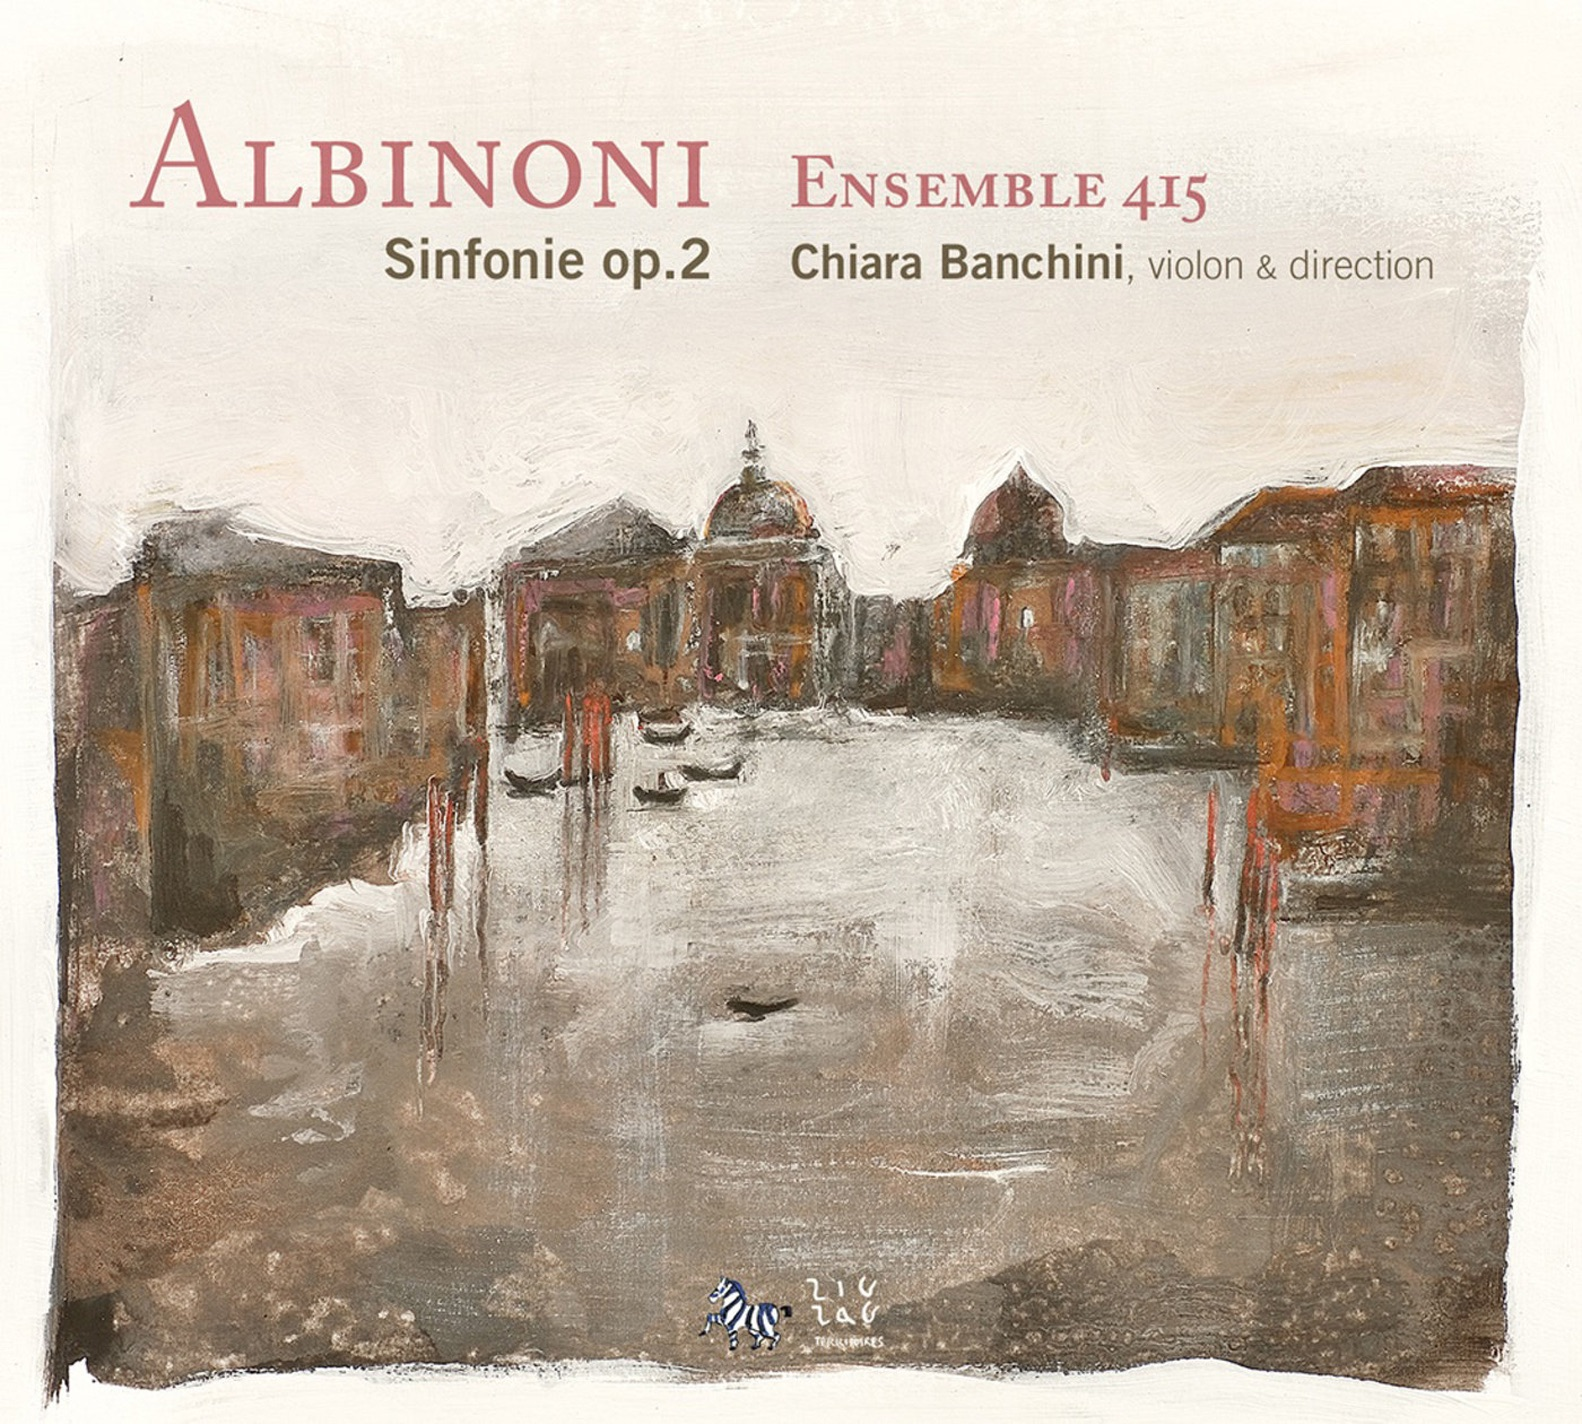 Sonata a 5 No. 4 in C Minor, Op. 2, No. 7: III. Adagio